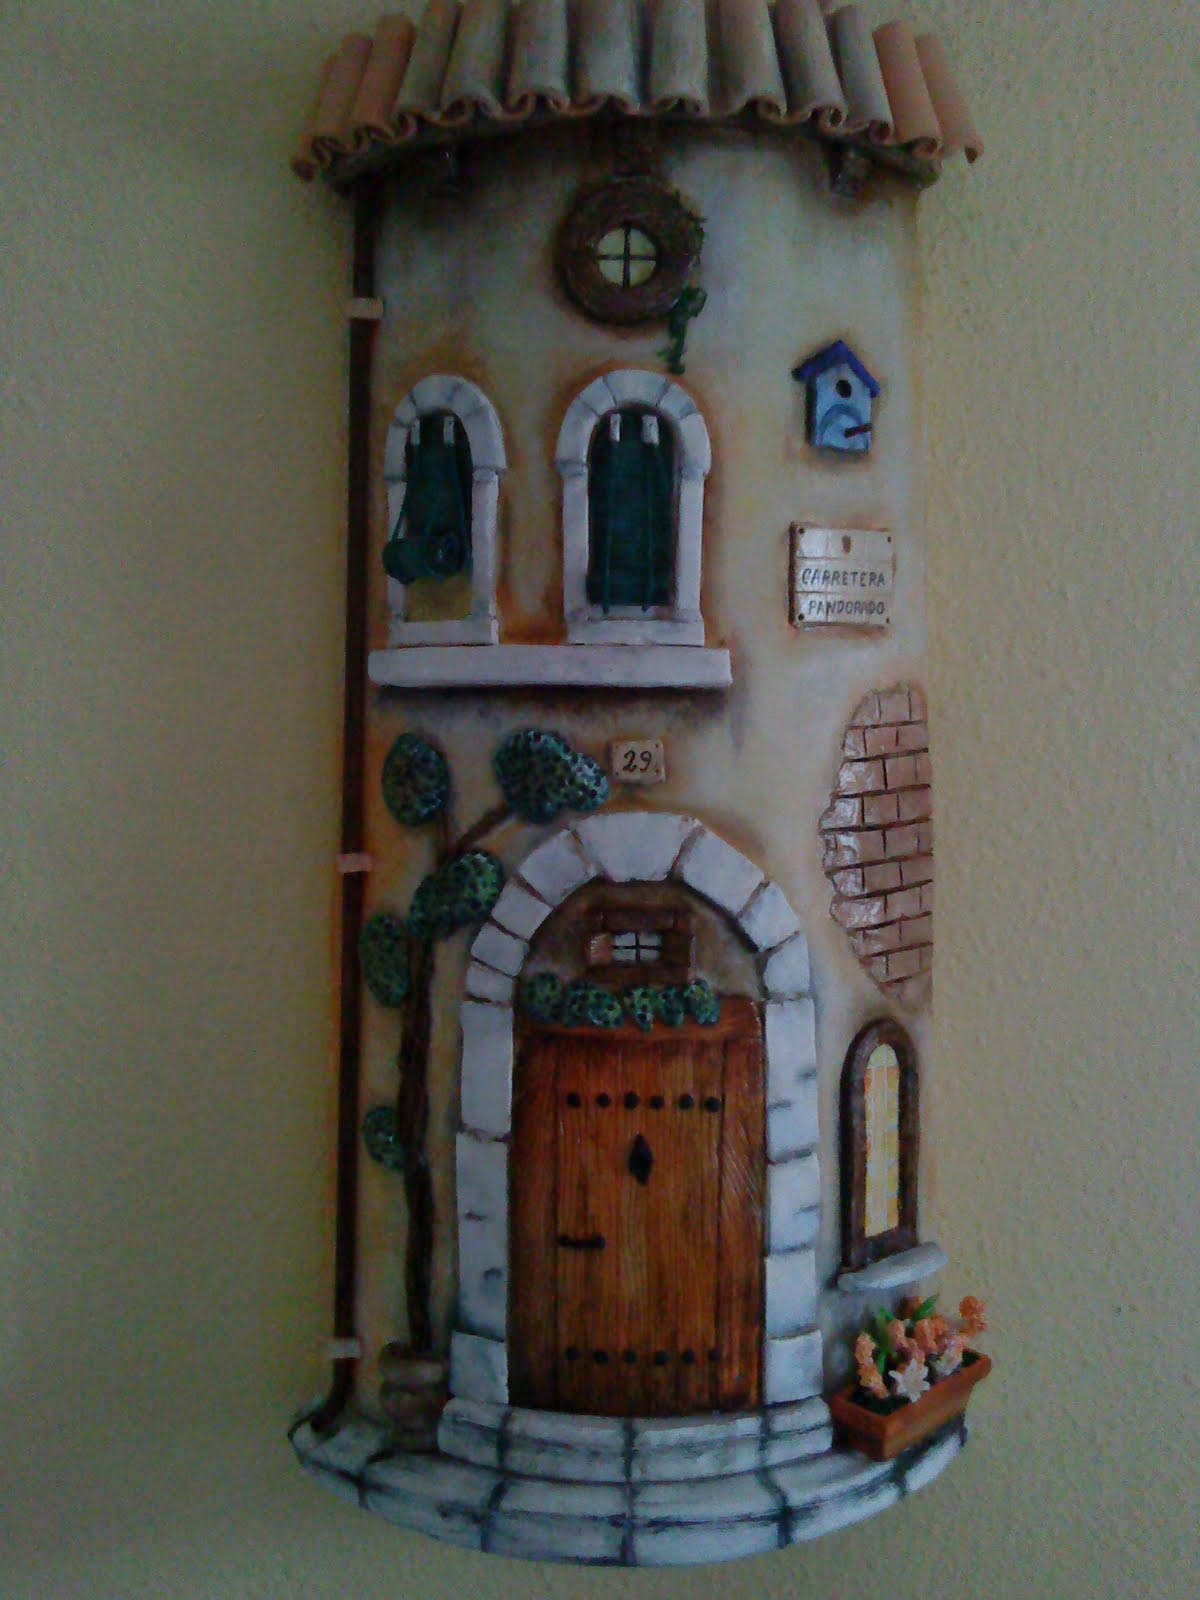 Imagenes Tejas Decoradas Óleo Y Más Teja Decorada En Relieve